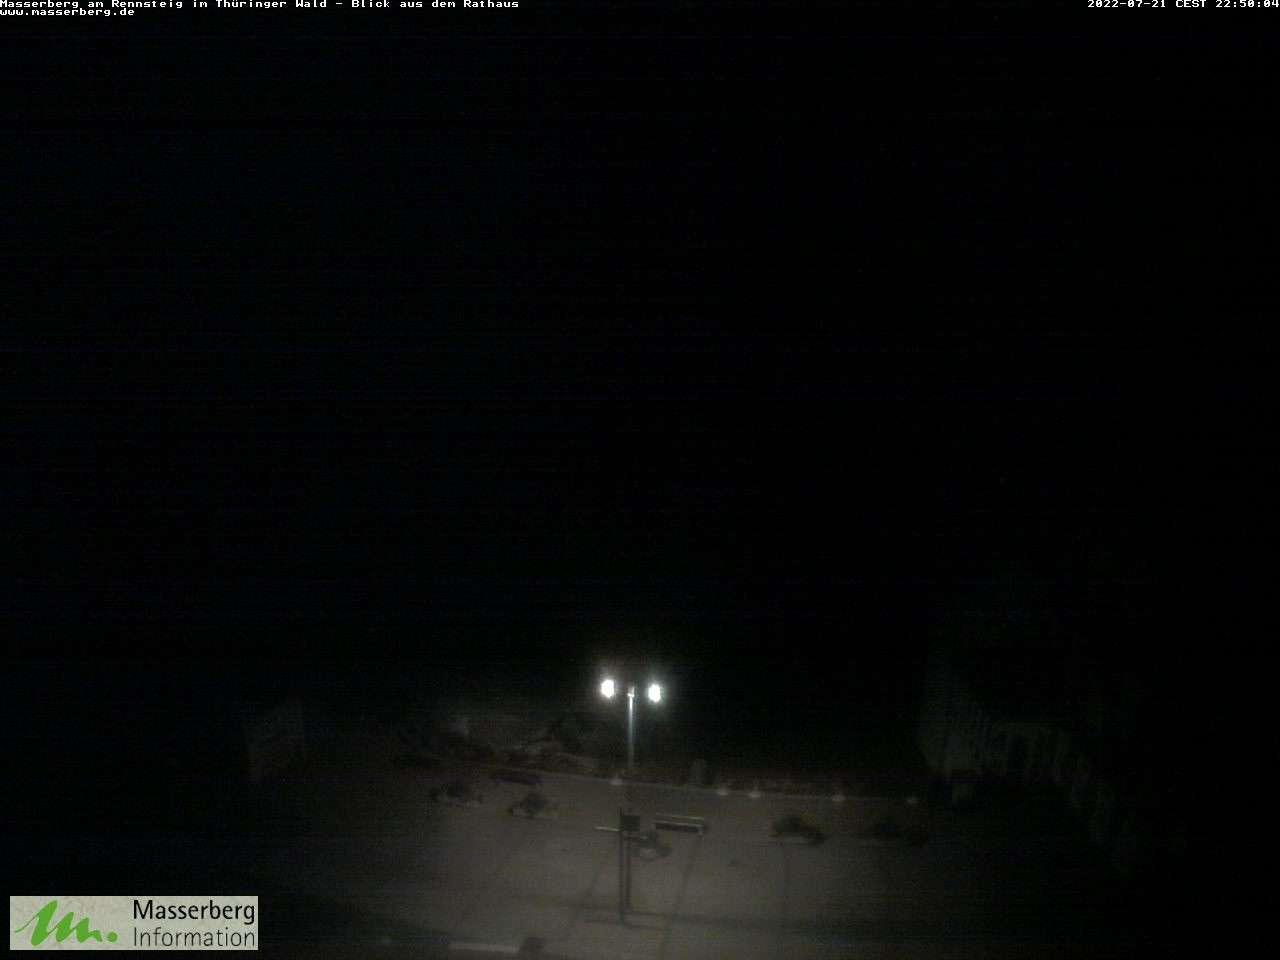 Webcam Rathaus Masserberg